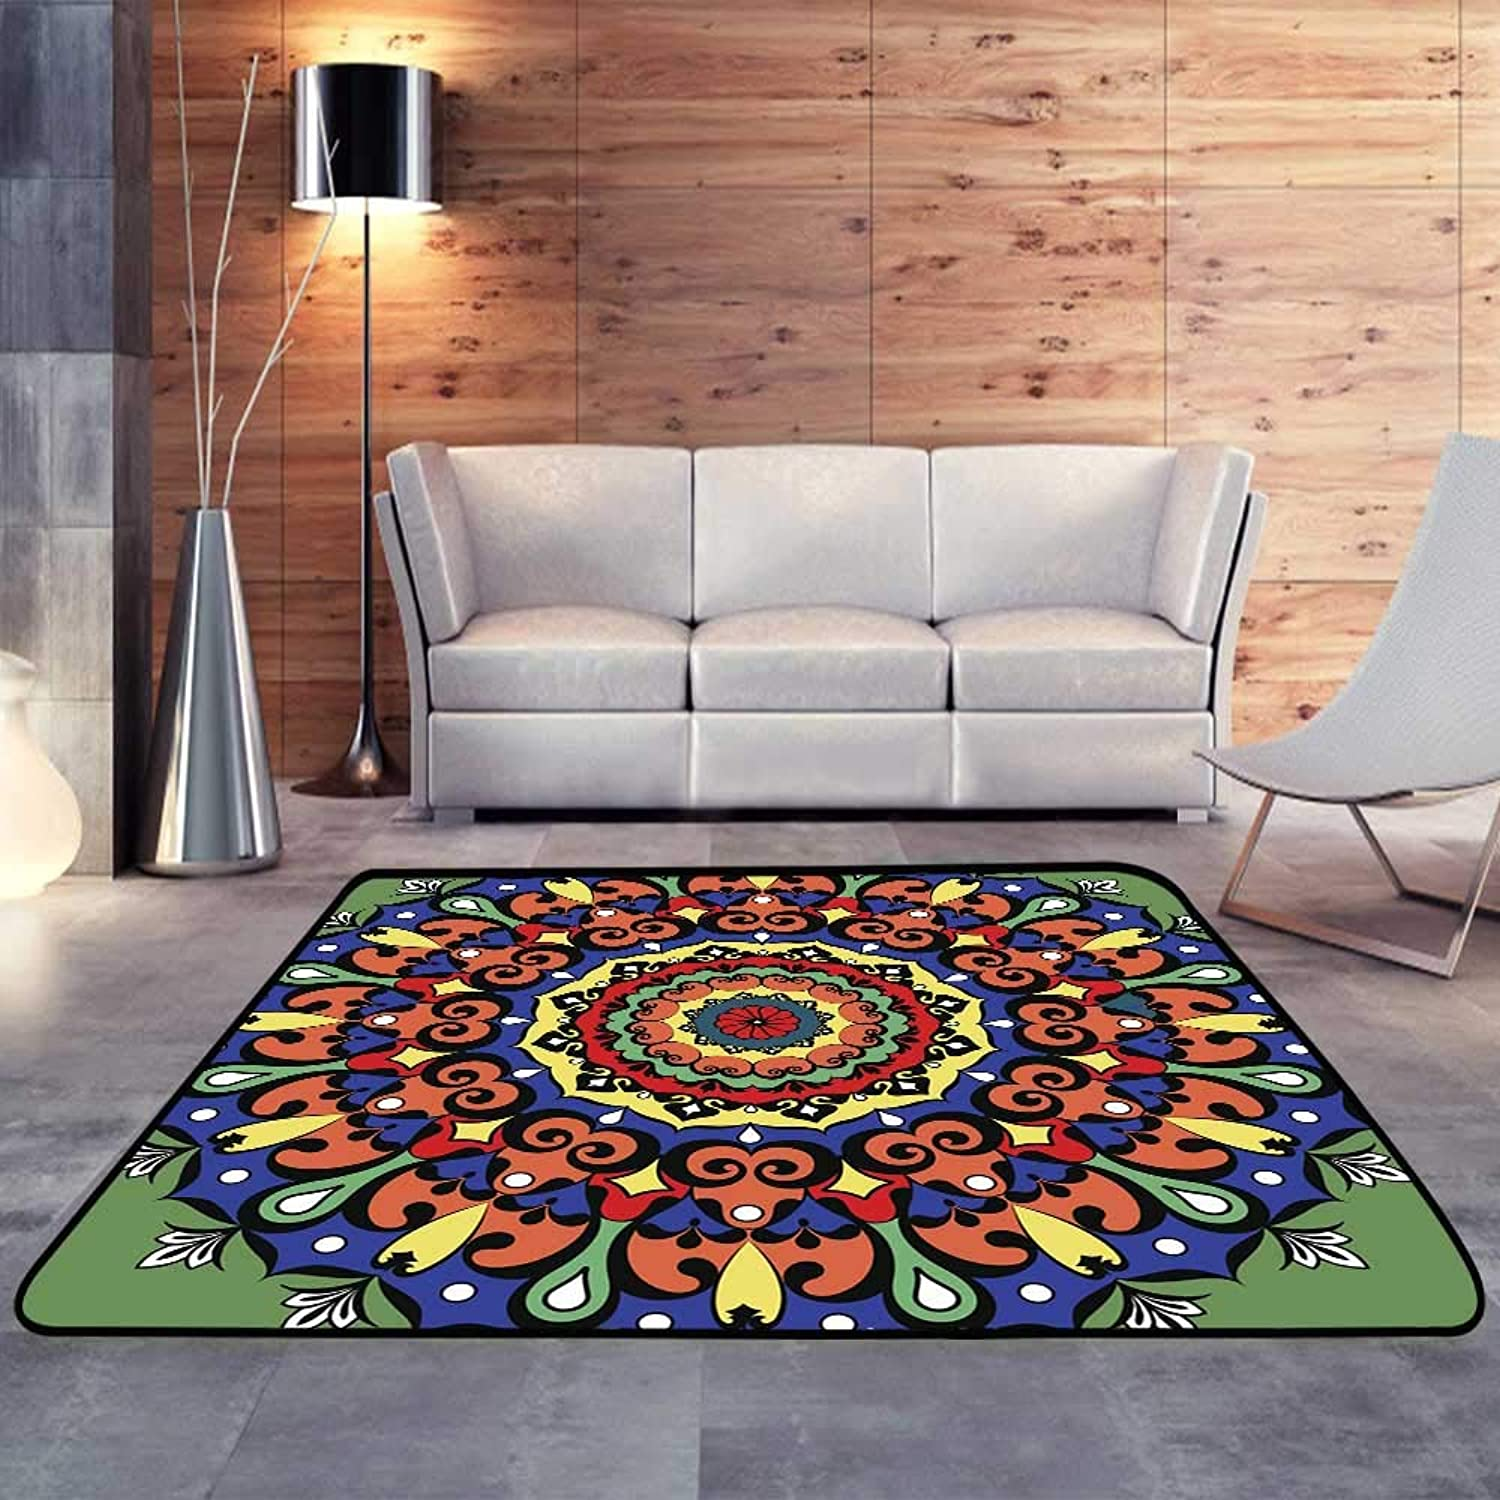 Carpet mat,Mandala Round Ornament Pattern Geometric Circle elementW 47  x L59 Floor Mat Entrance Doormat